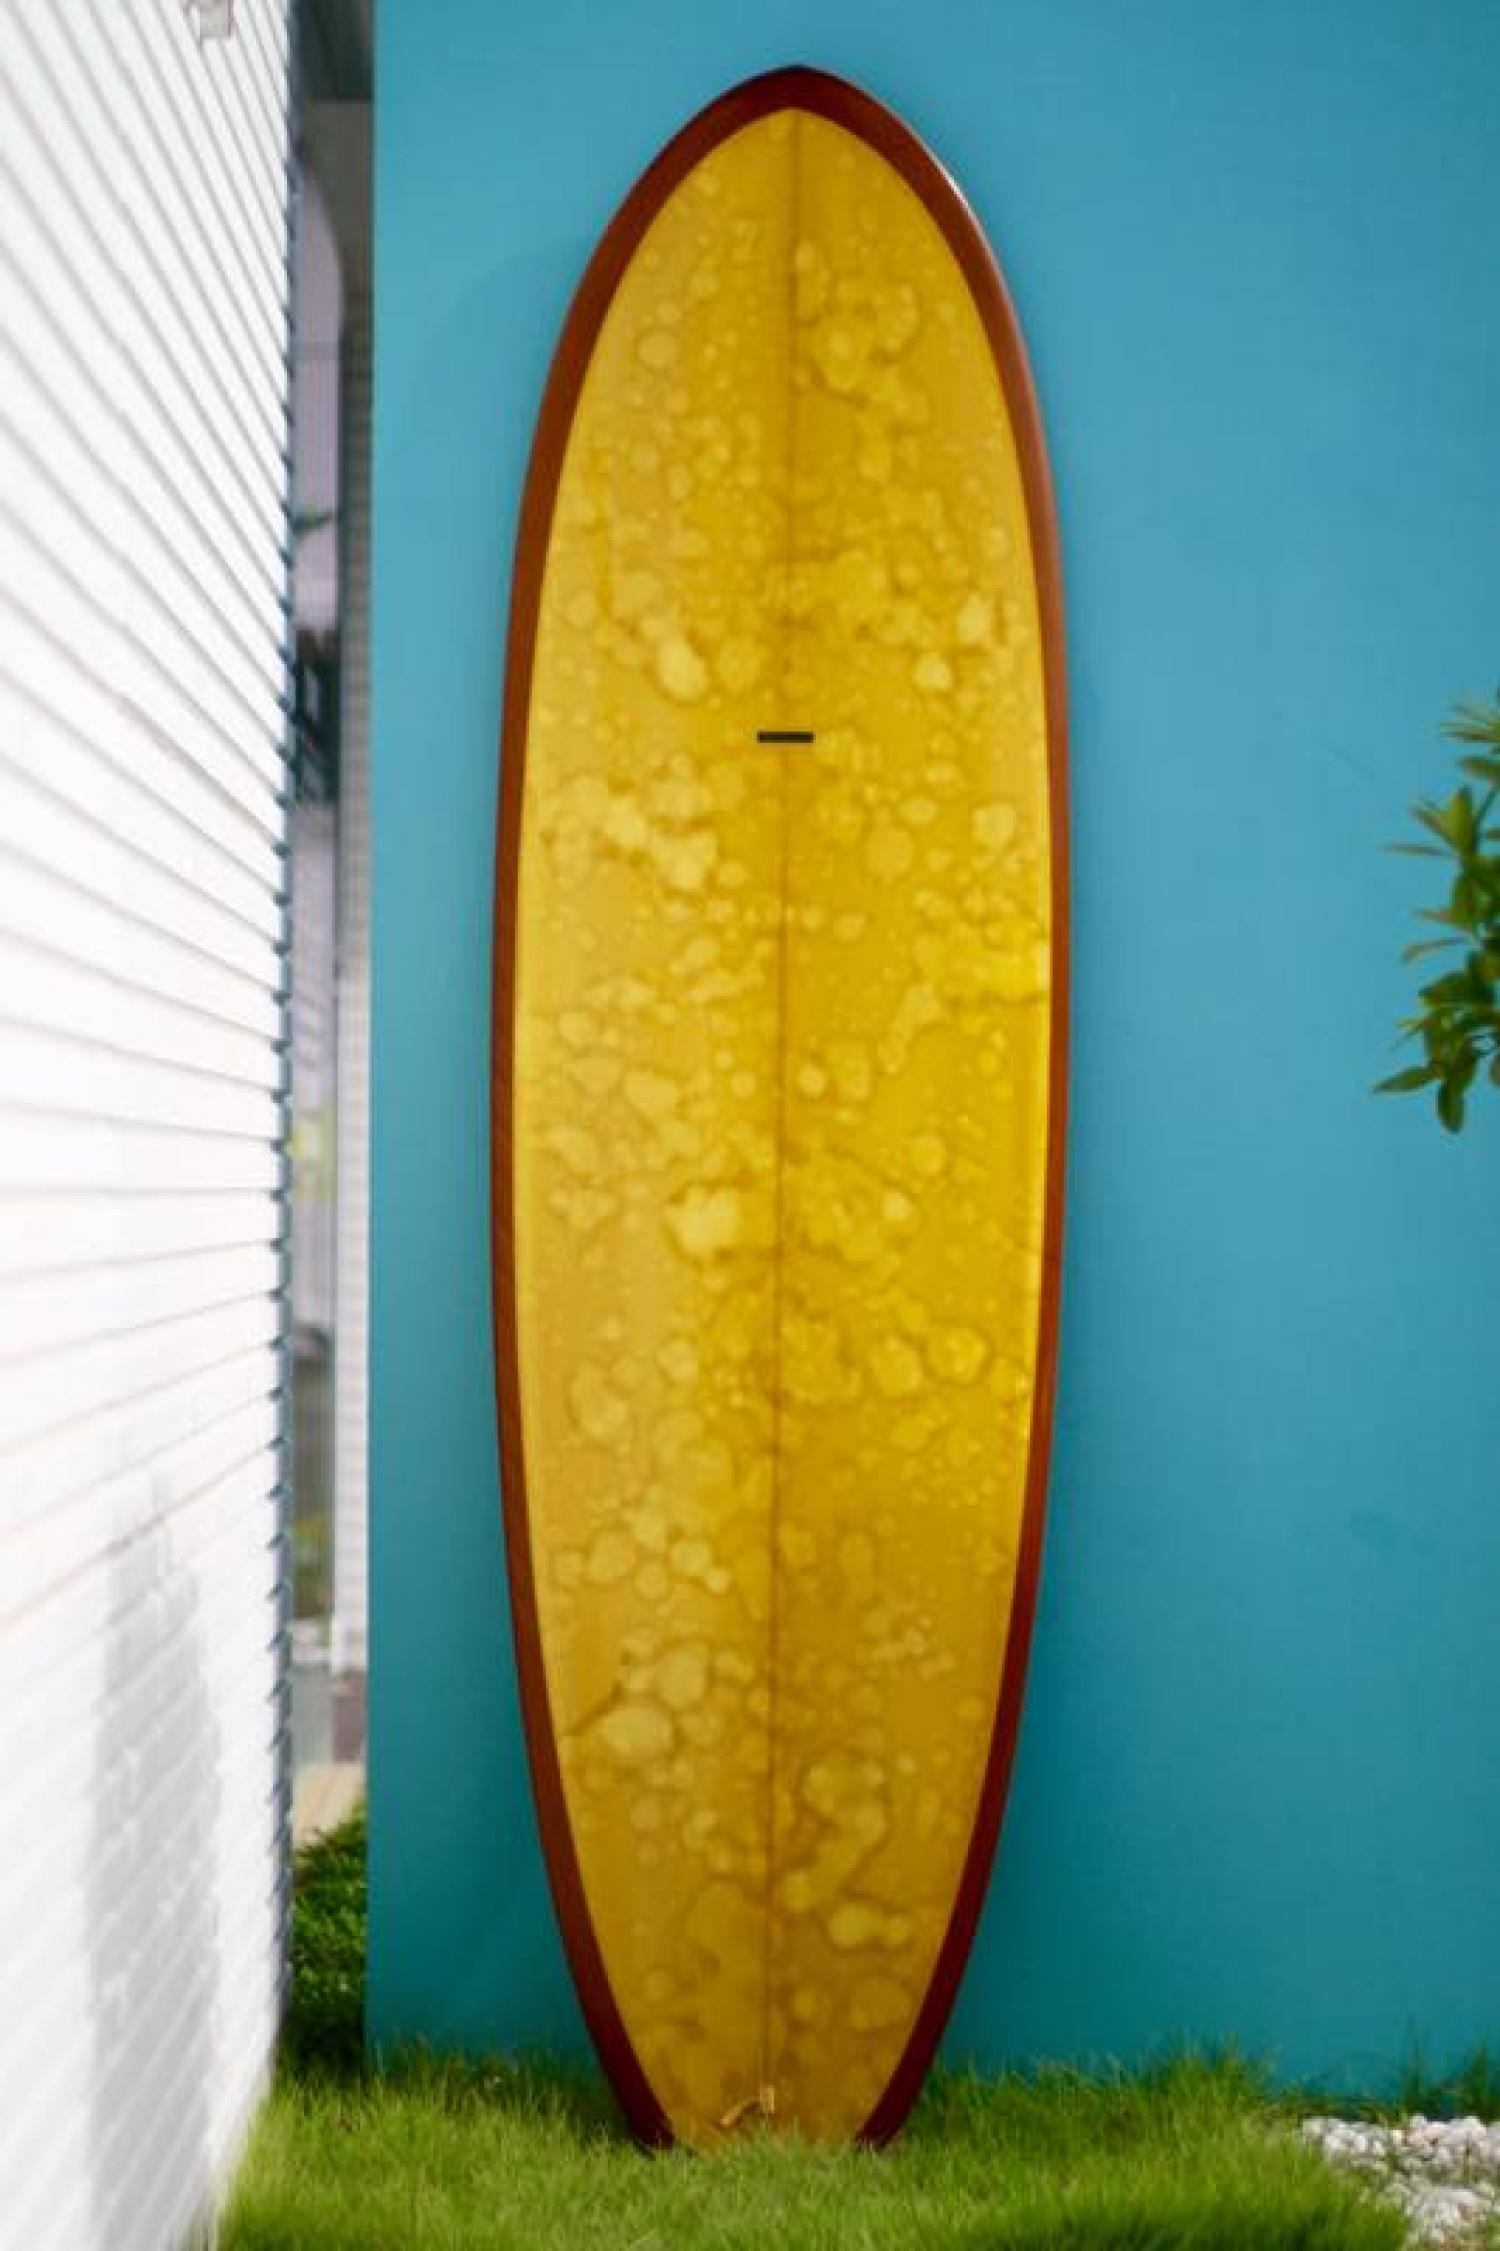 USED BOARDS (McCallum Surfboards Twin Keel Egg 7.0)